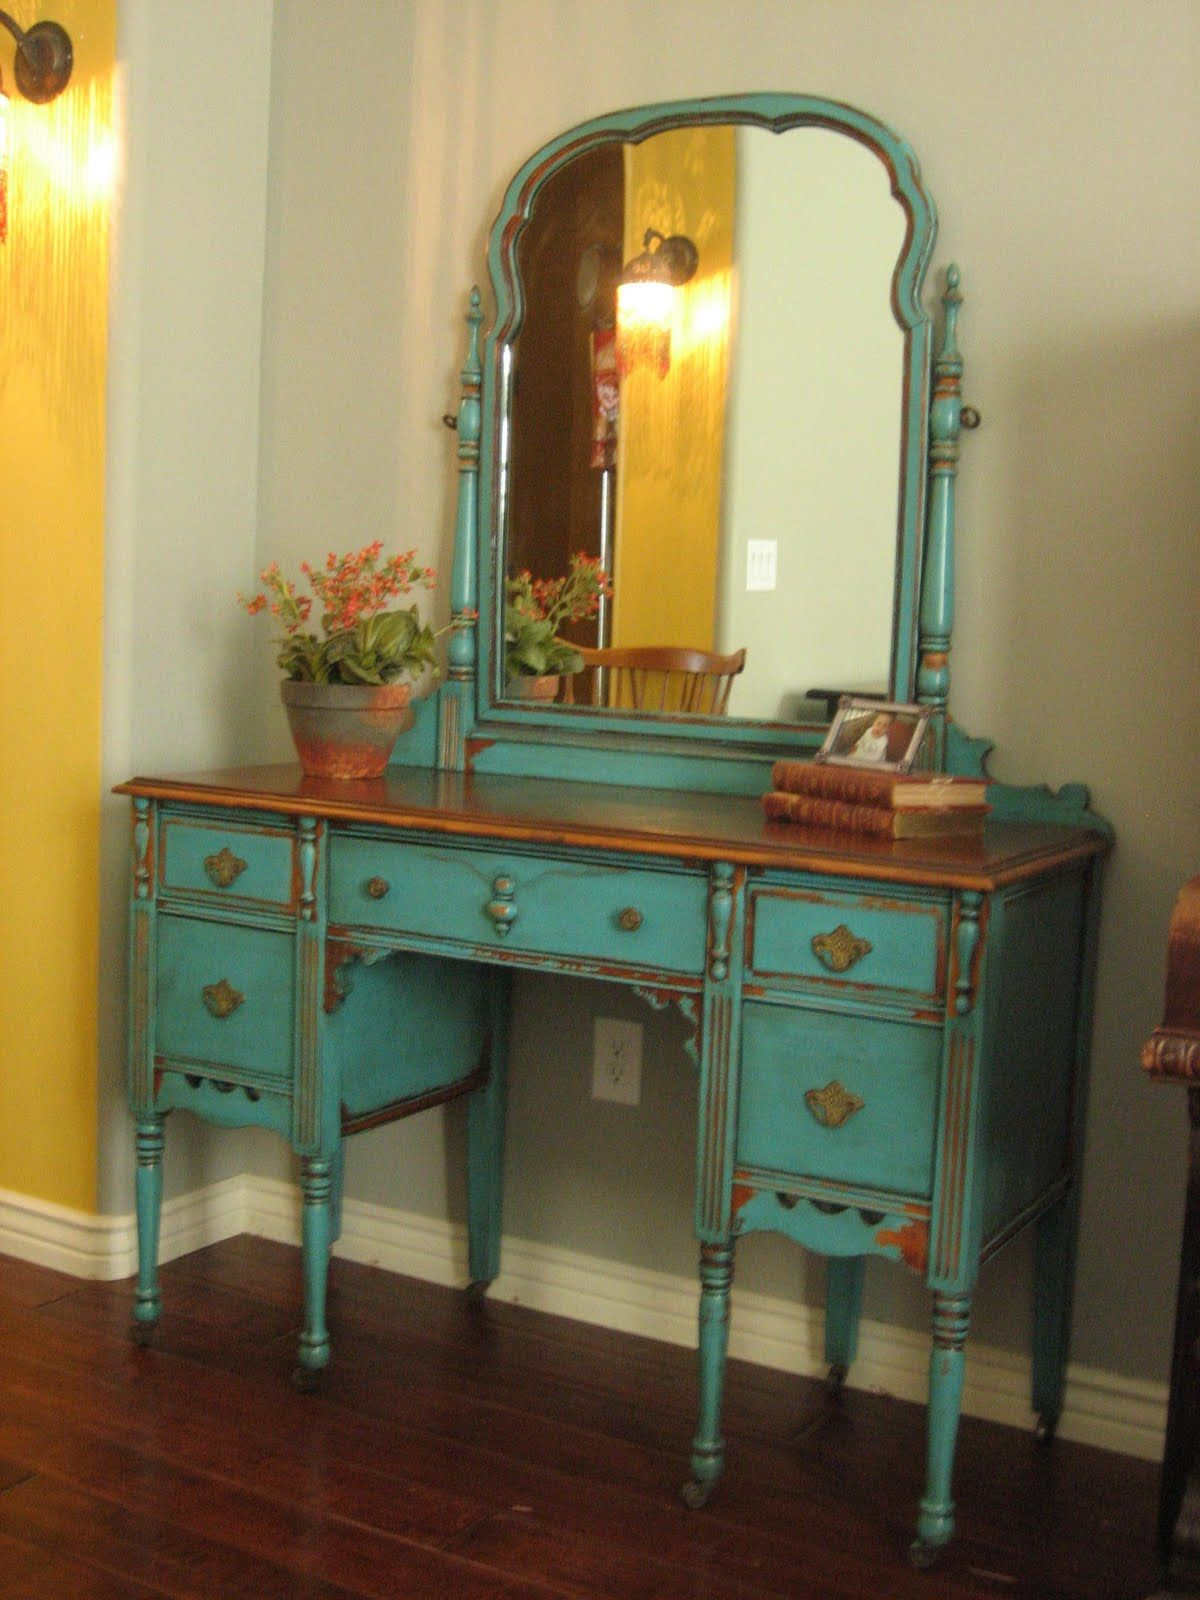 Euro Muebles European Paint Finishes Chippy Teal Vanity Mobiliario